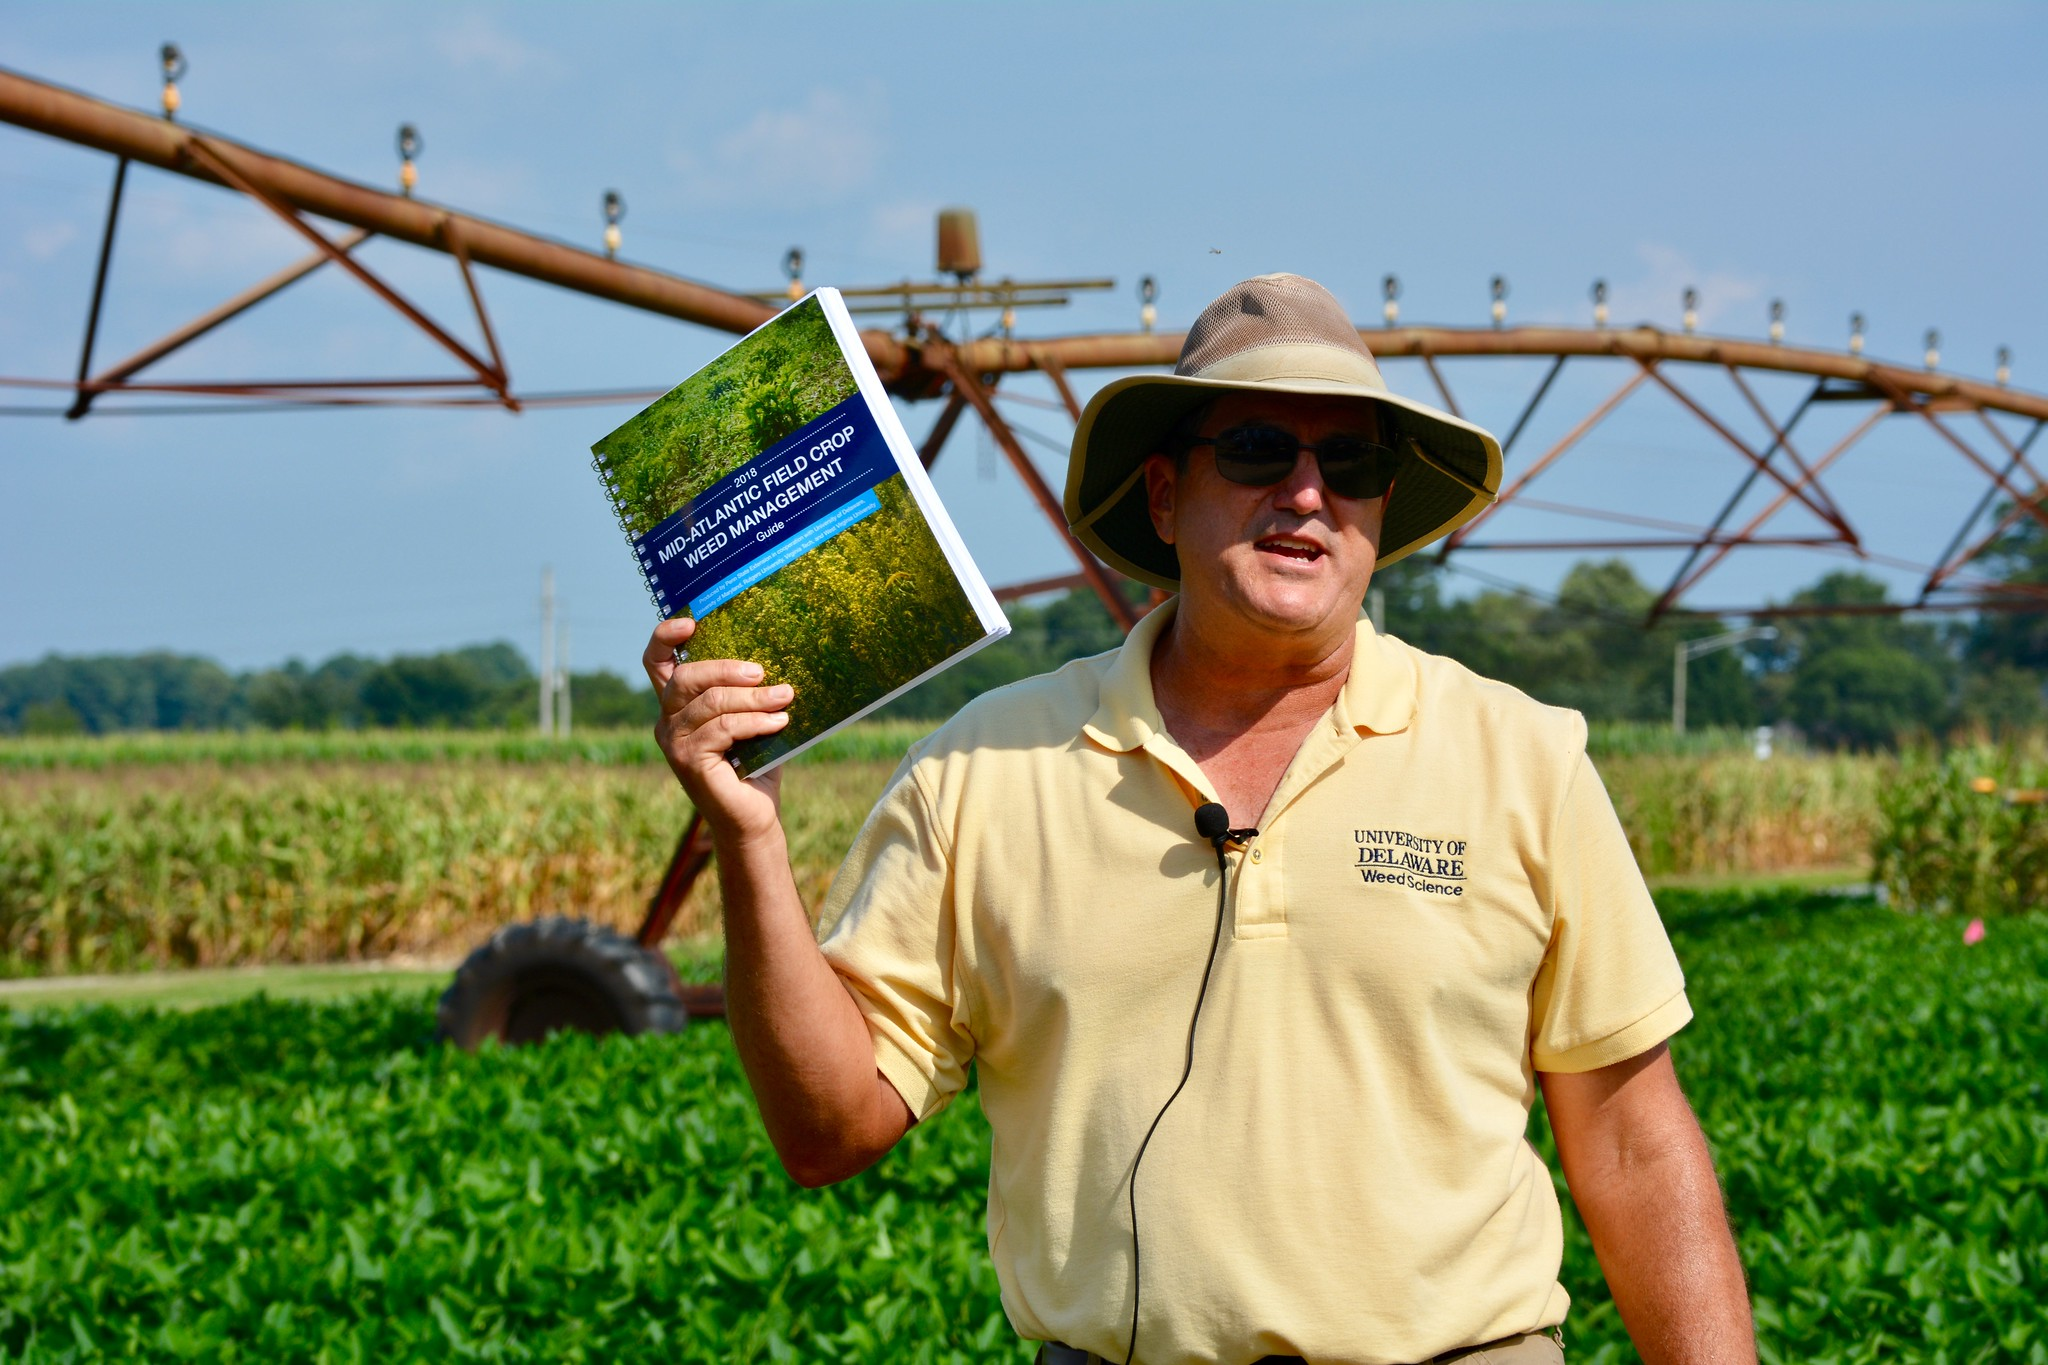 Msrk VsnGessel holding up weed guide at recent weed day tour